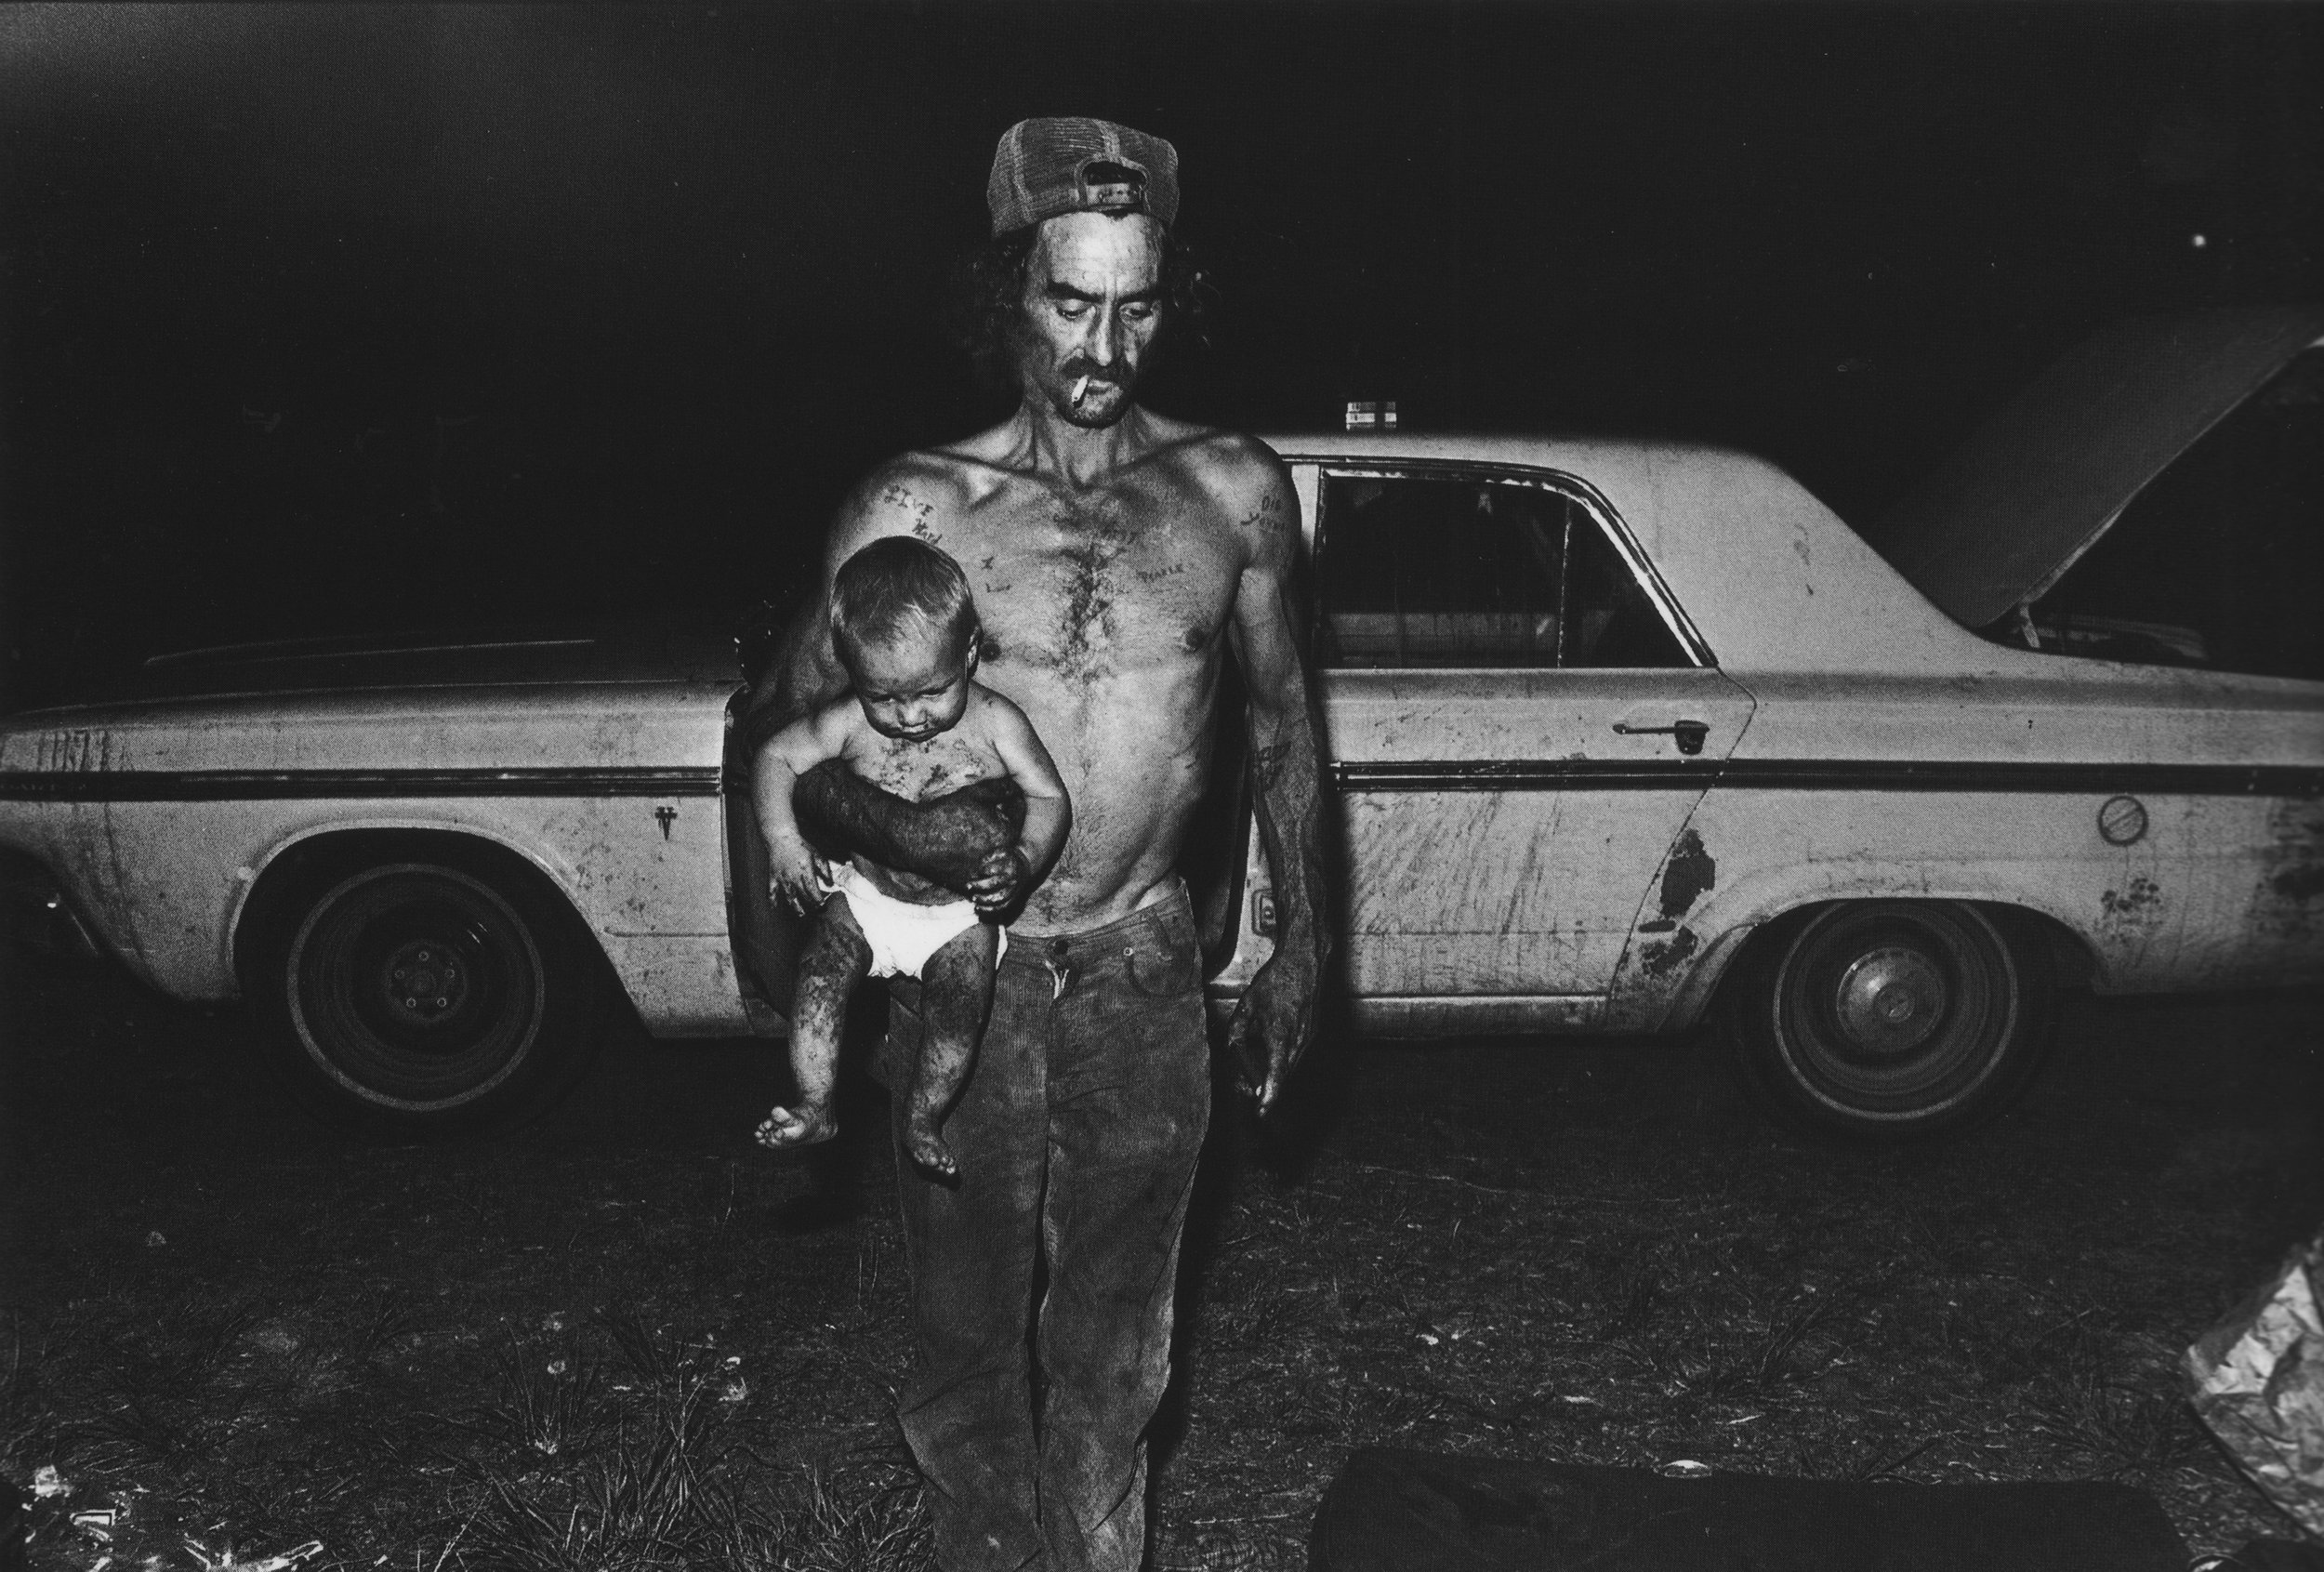 L. H. Tindal carrying son Shannon, Loxahatchee, Florida